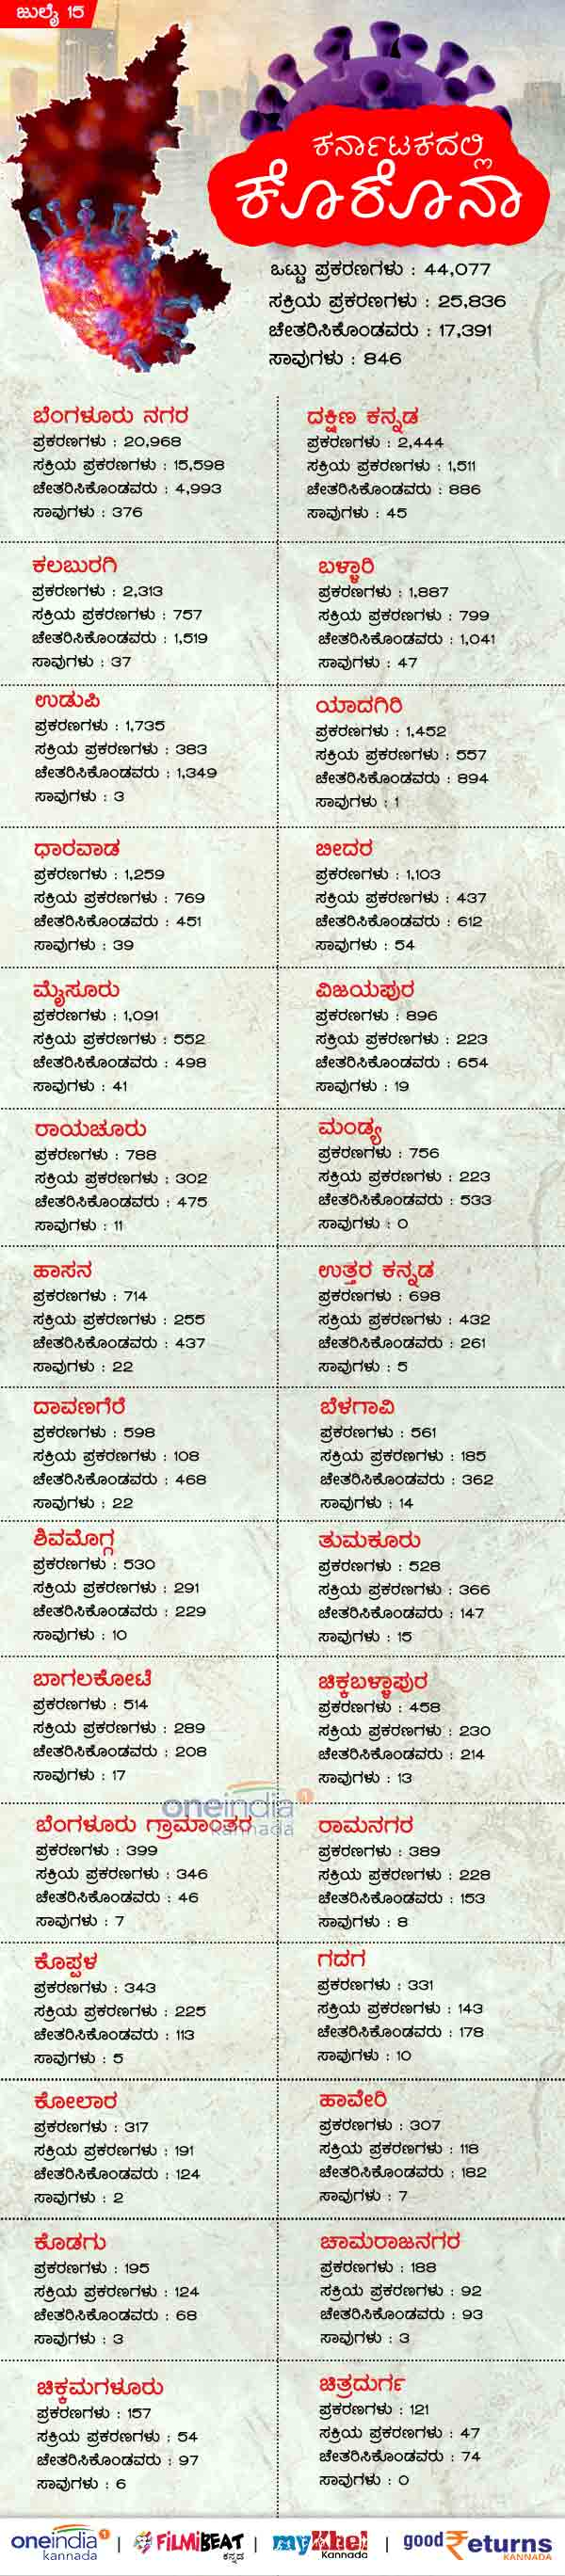 Infographics: Karnataka districtwise Coronavirus Infection and Deaths